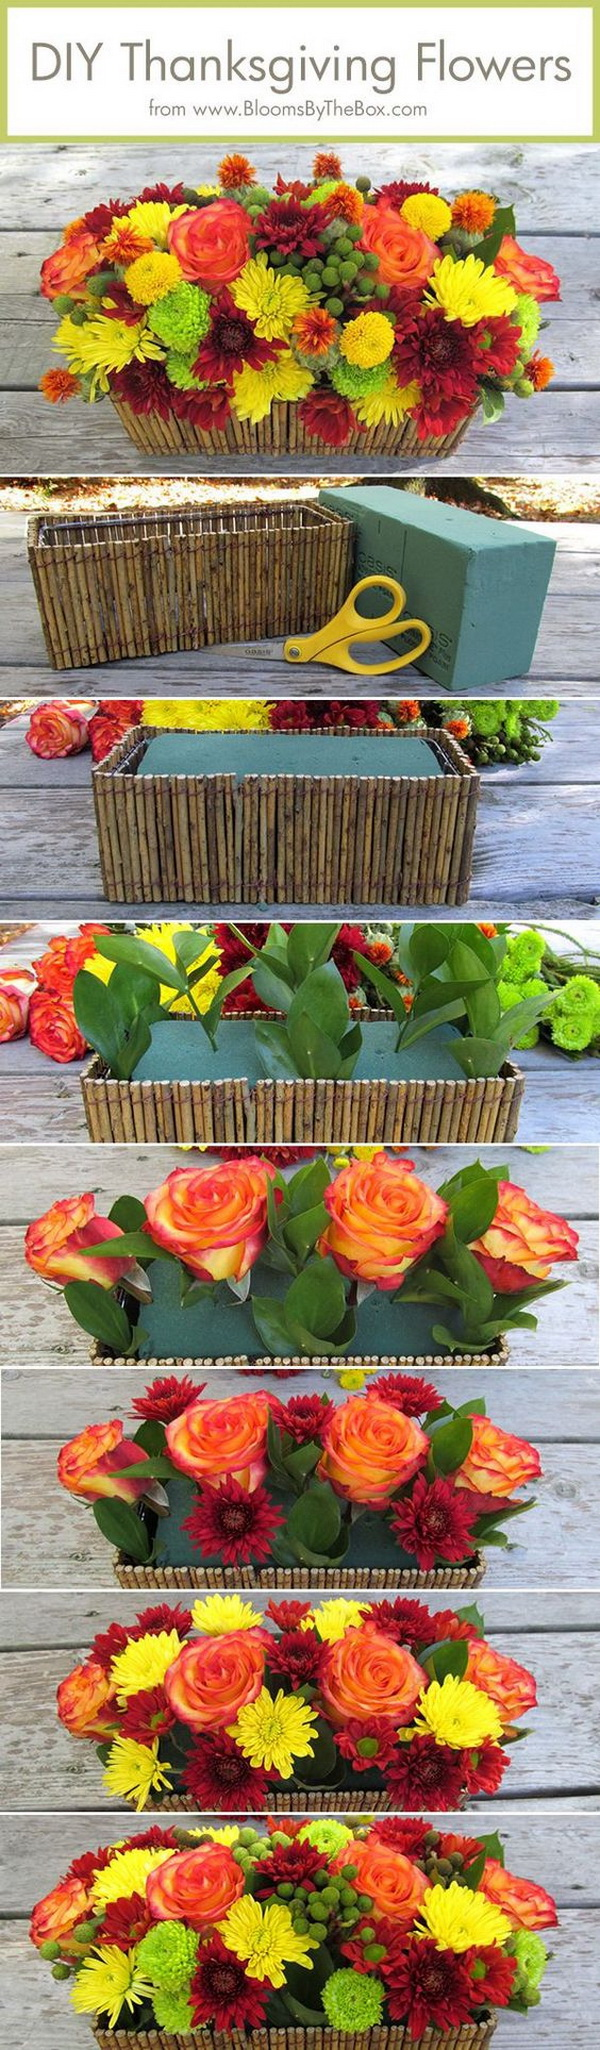 DIY Thanksgiving Flower Arrangement. Another great Thanksgiving decor with flowers that brightens up your home decor and keeps you within a budget!